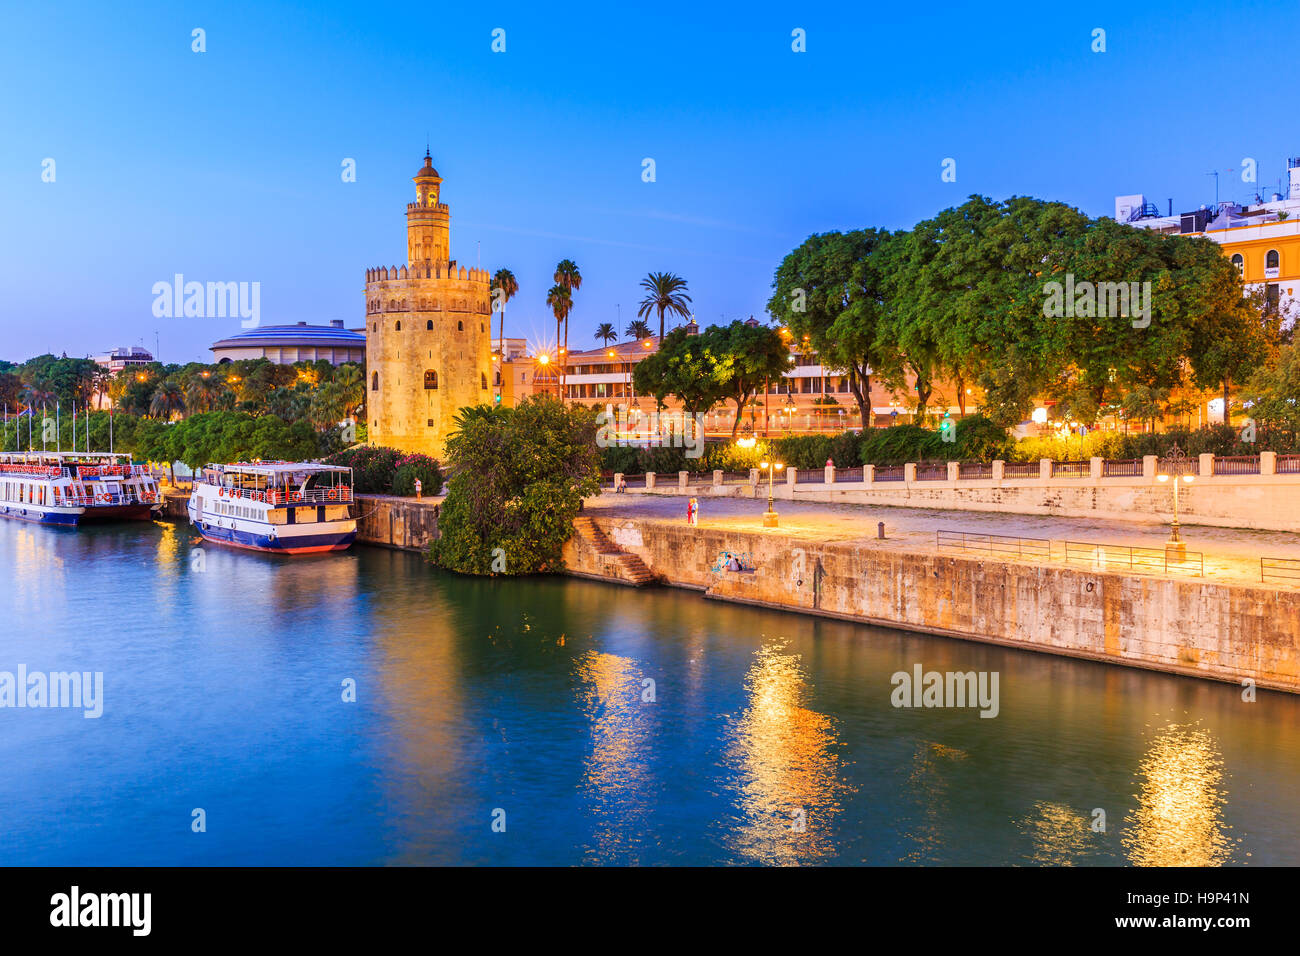 Seville, Spain. Guadalquivir river and Golden Tower (Torre del Oro) - Stock Image